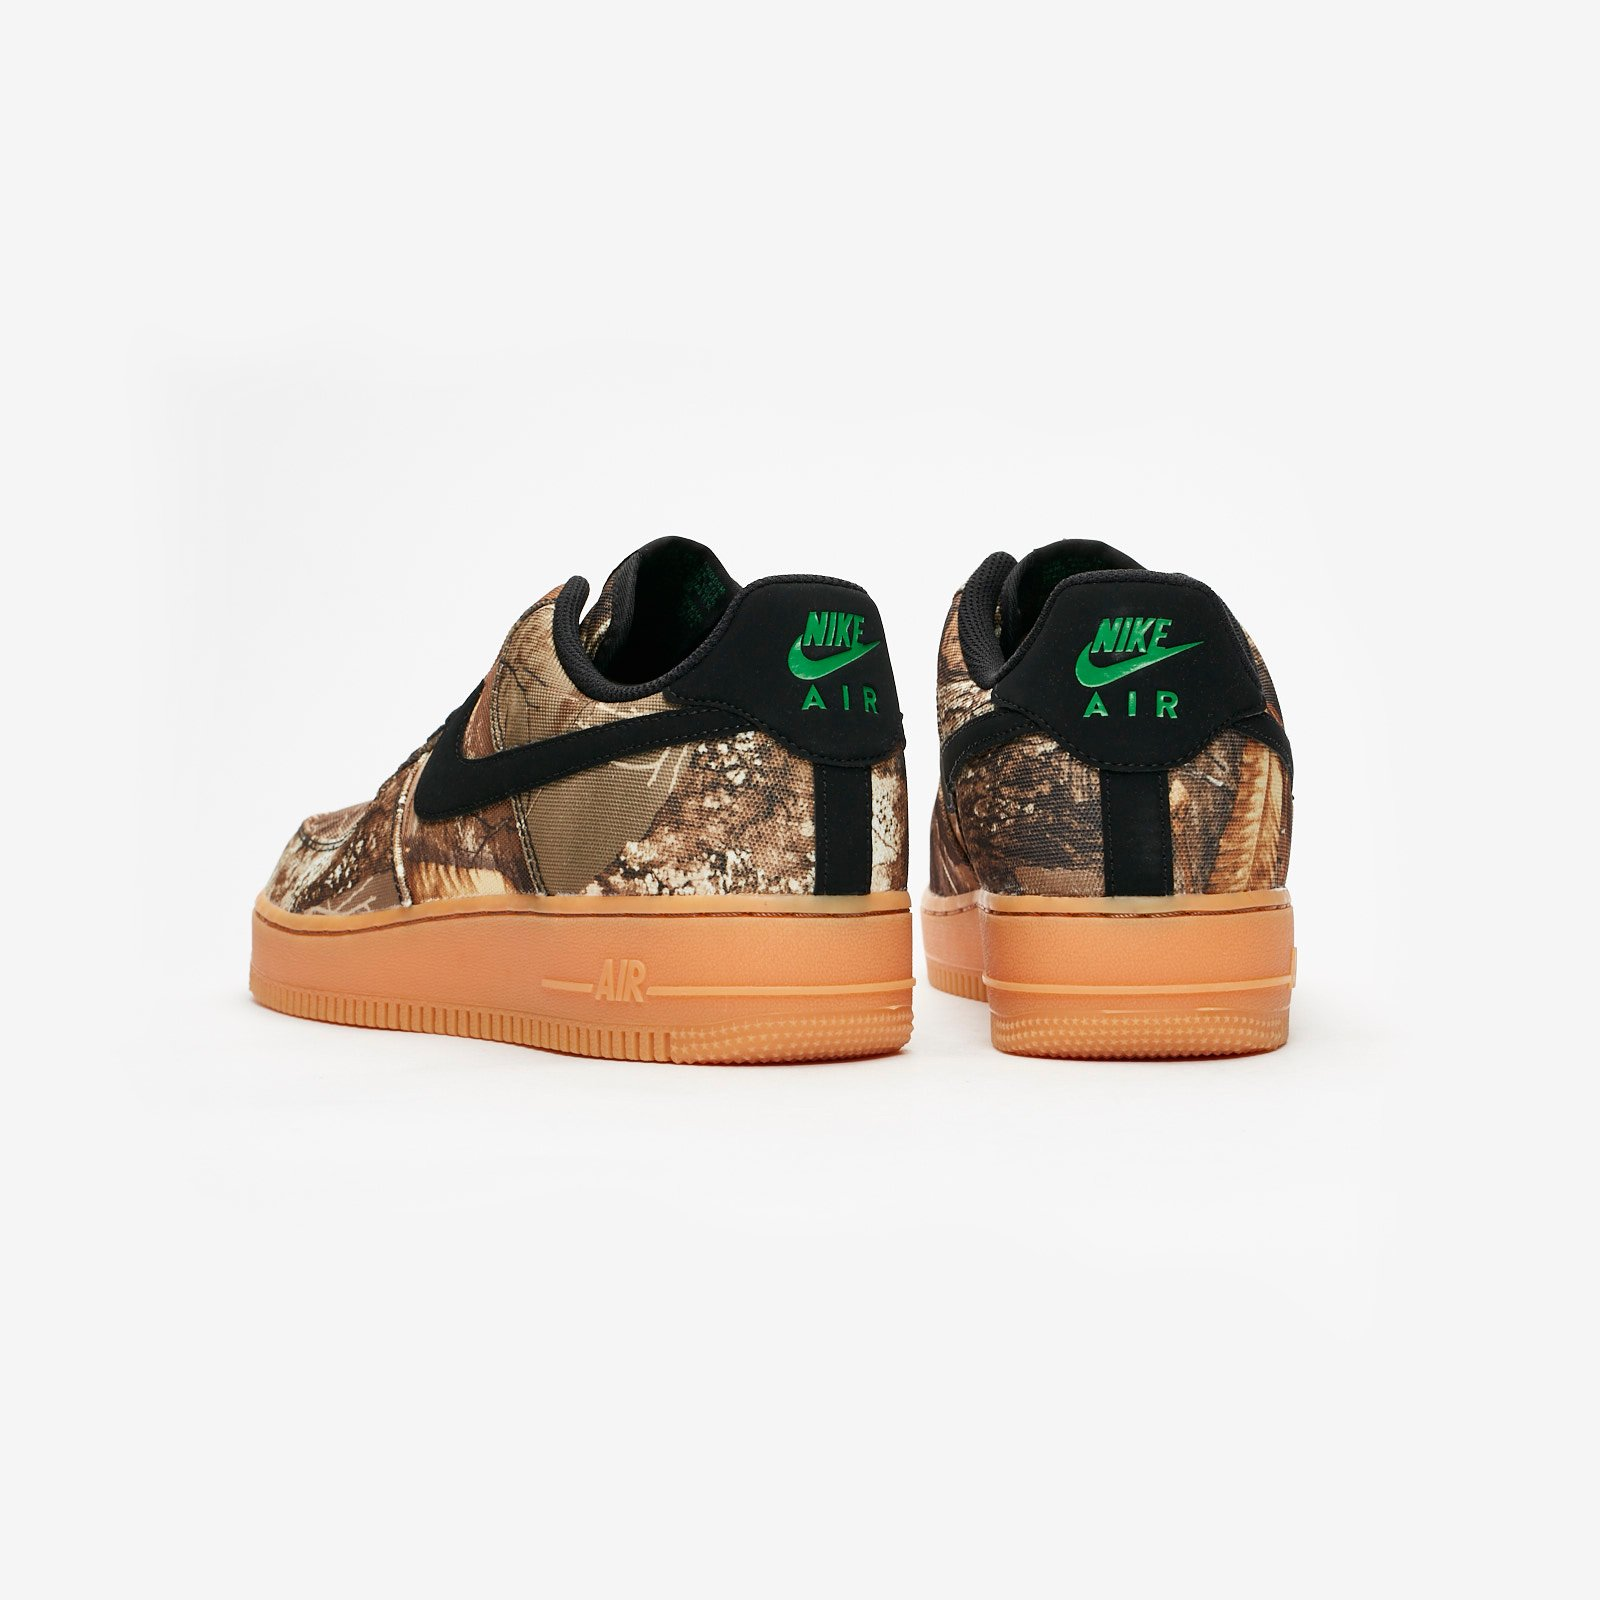 2a4ad0f91e8 Nike Air Force 1 07 LV8 3 - Ao2441-001 - Sneakersnstuff